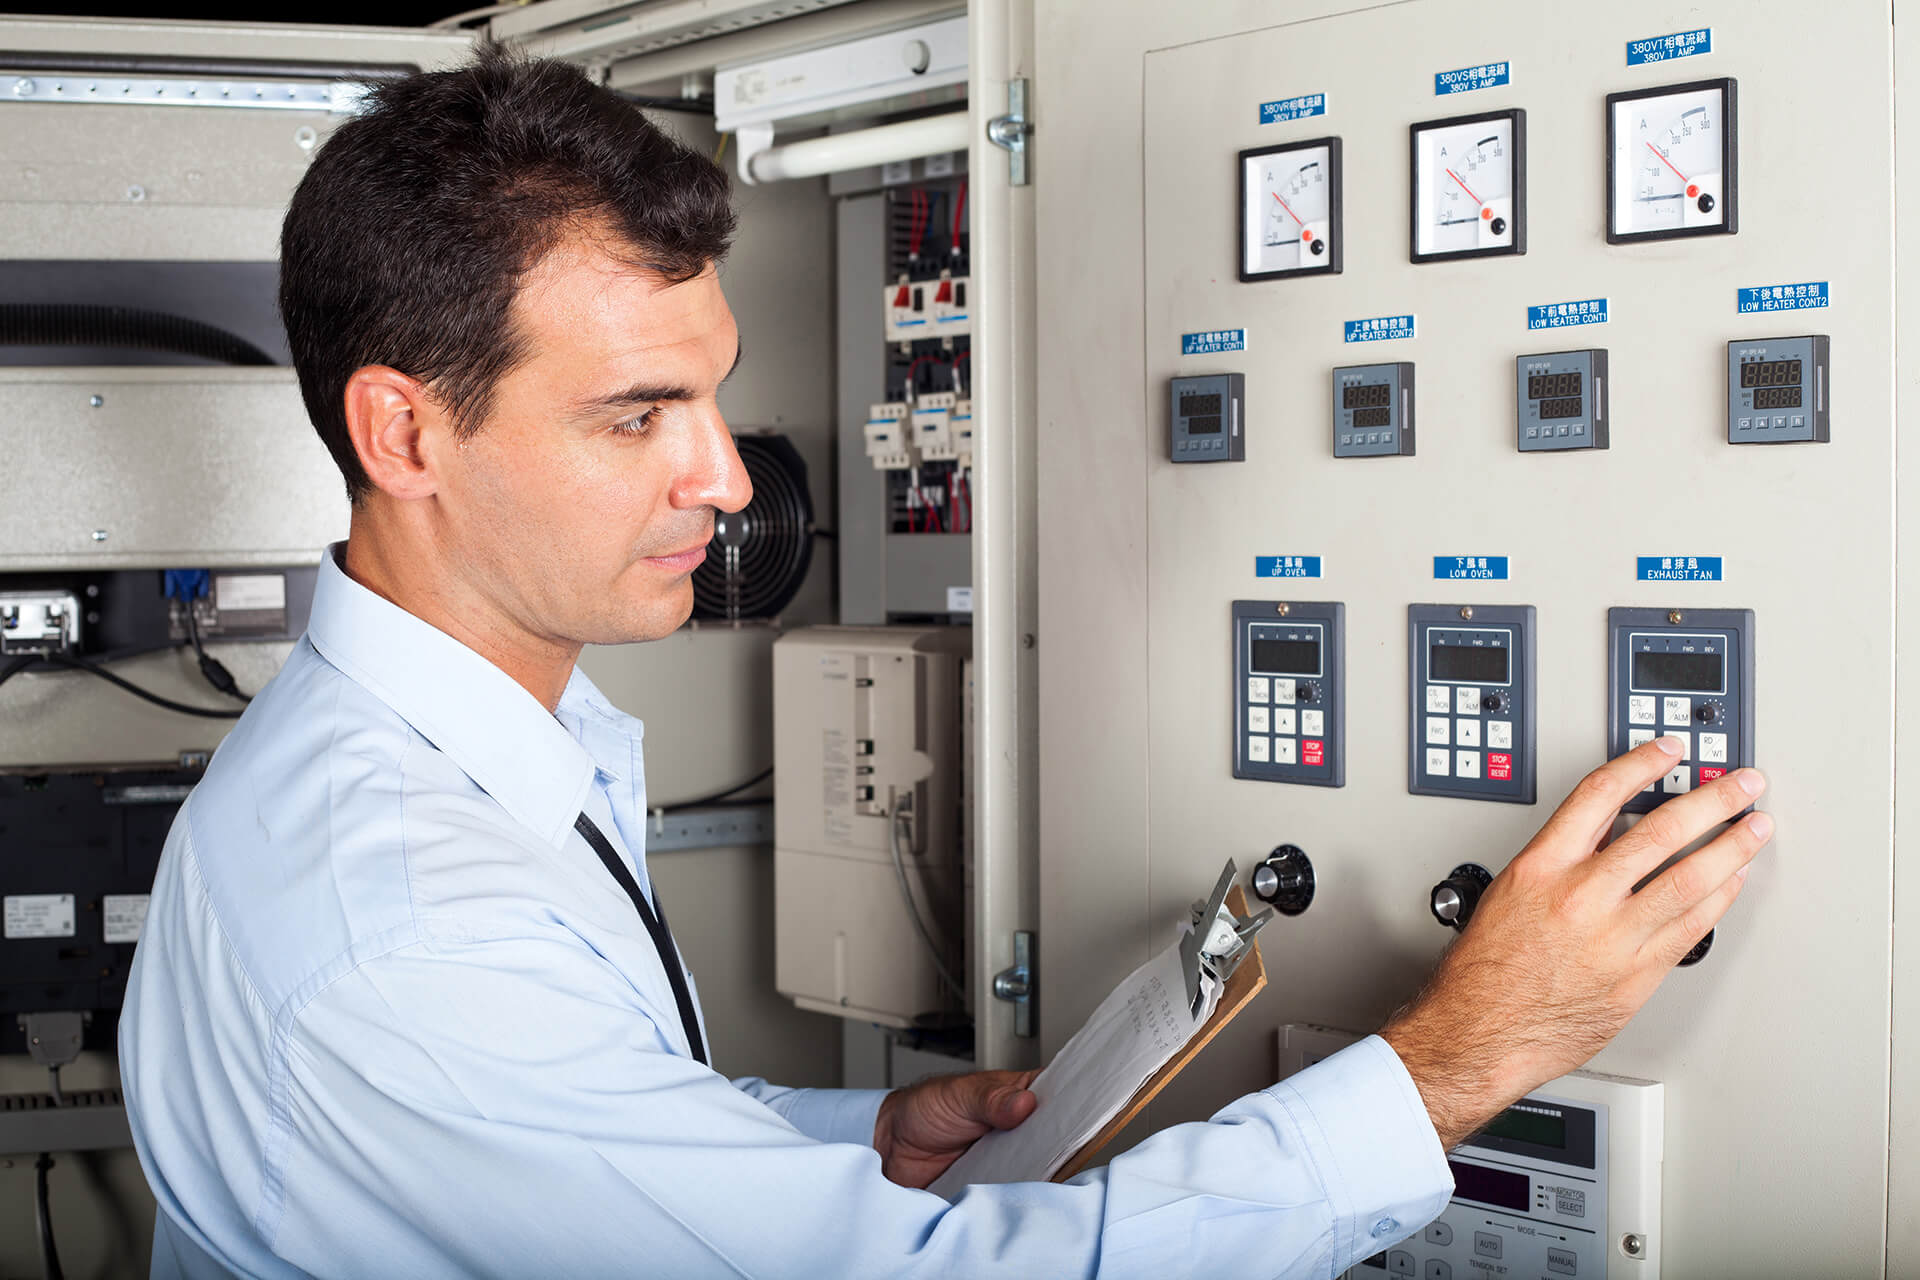 Specialized man checking electricity panel